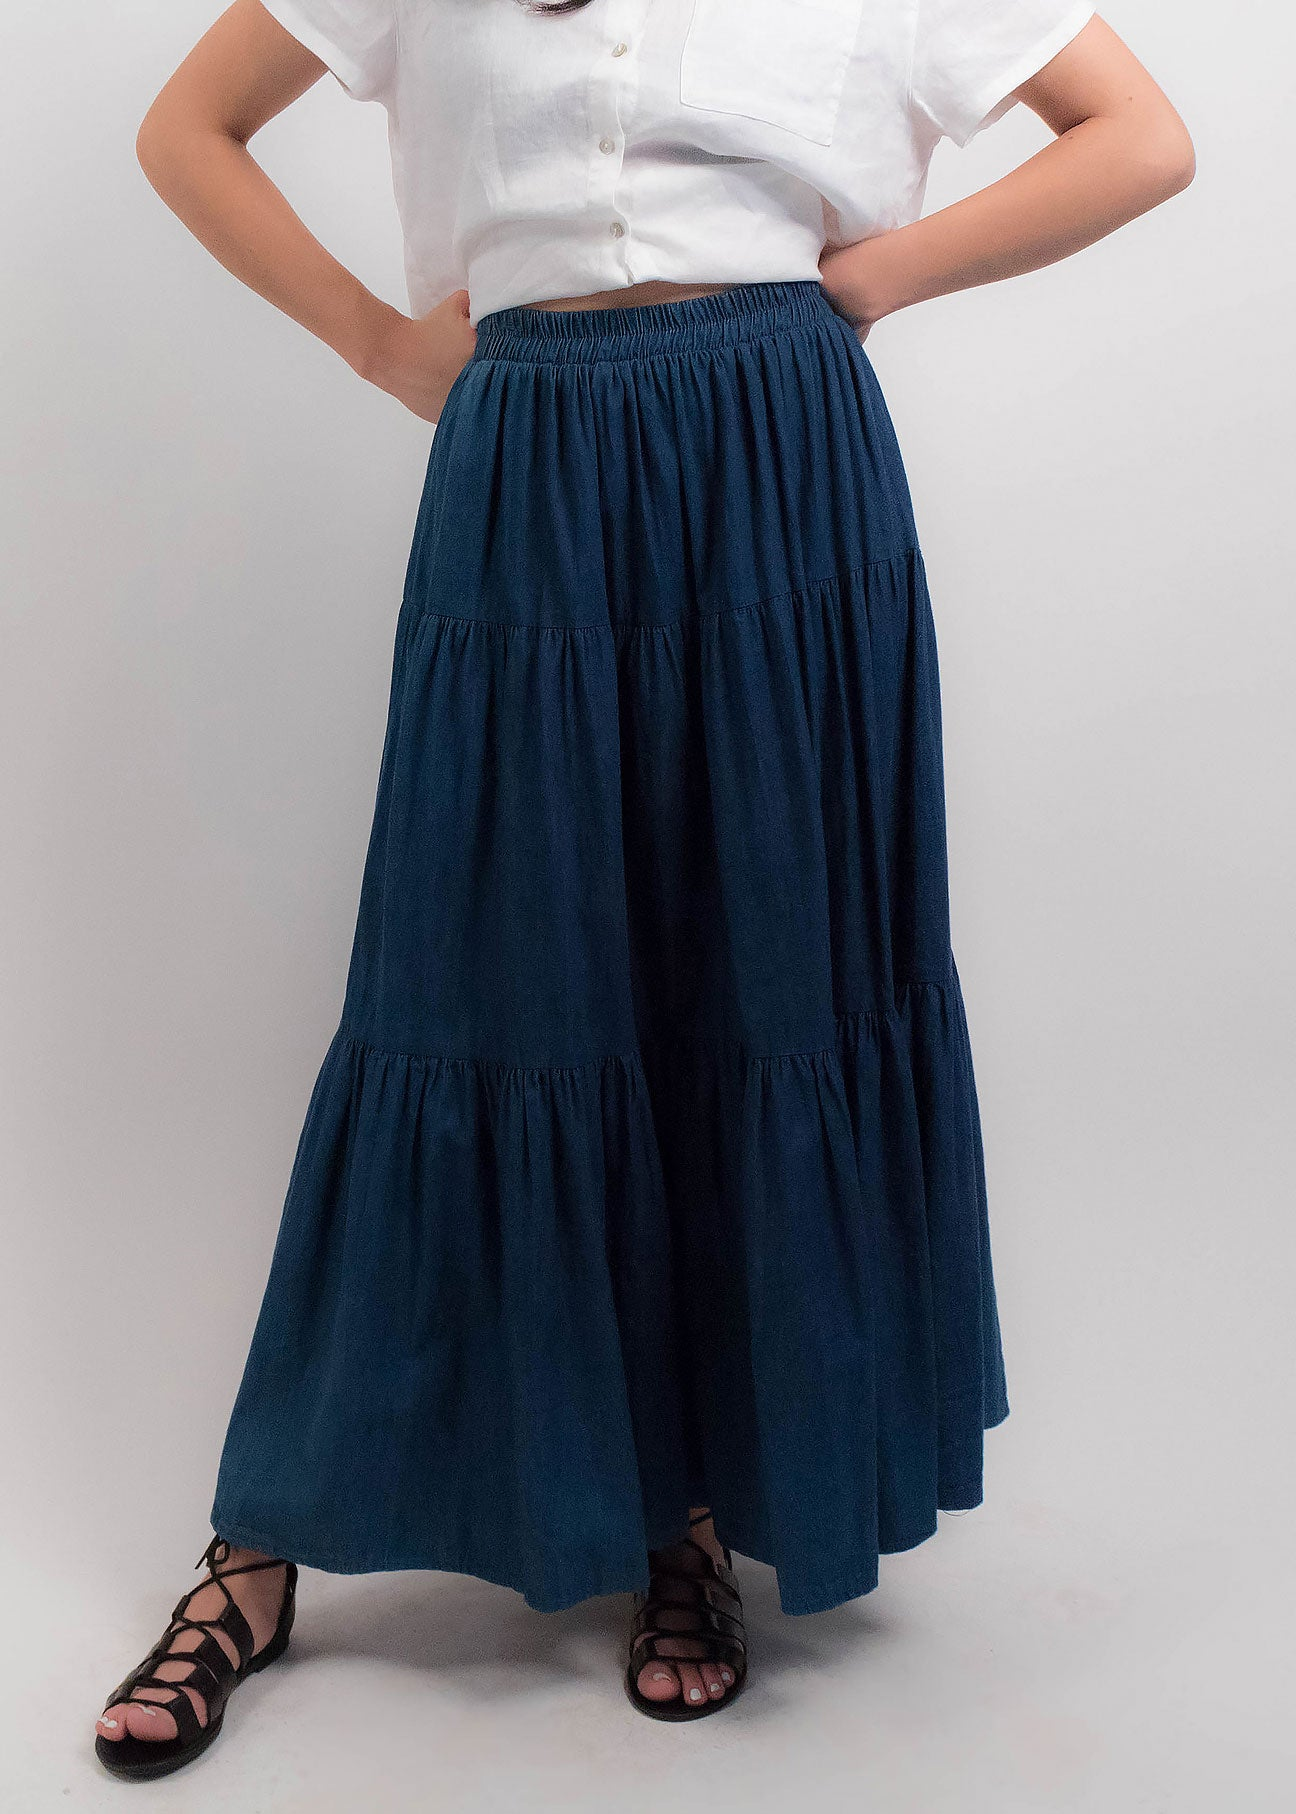 80s Denim Boho Peasant Skirt